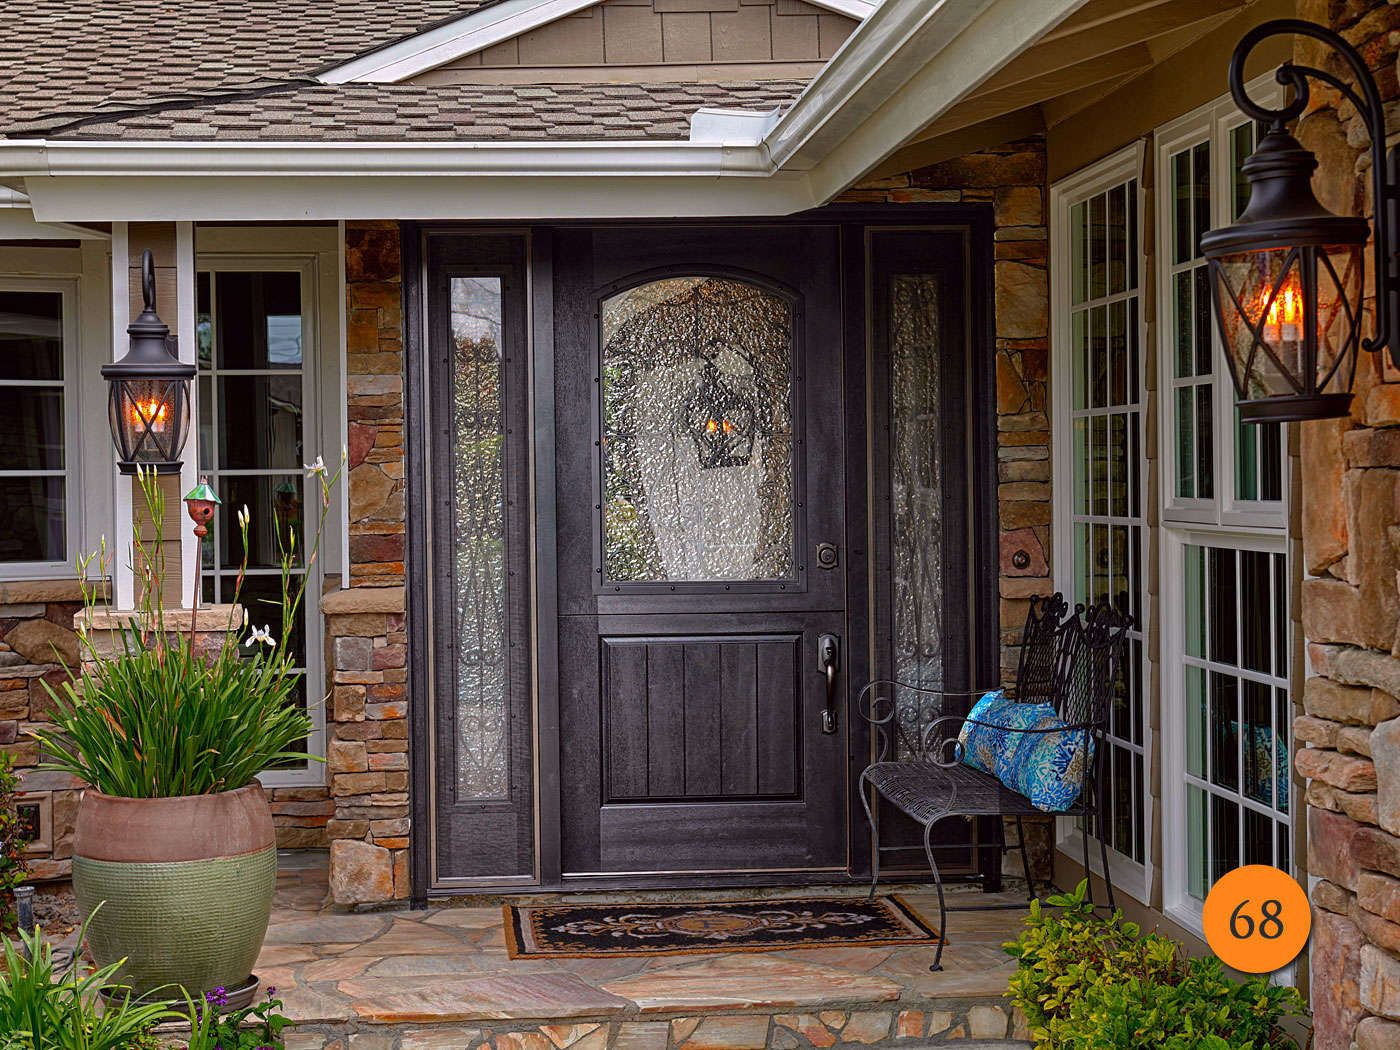 plastpro model dra2a single dutch door with two operable sidelights with screens top leaf half